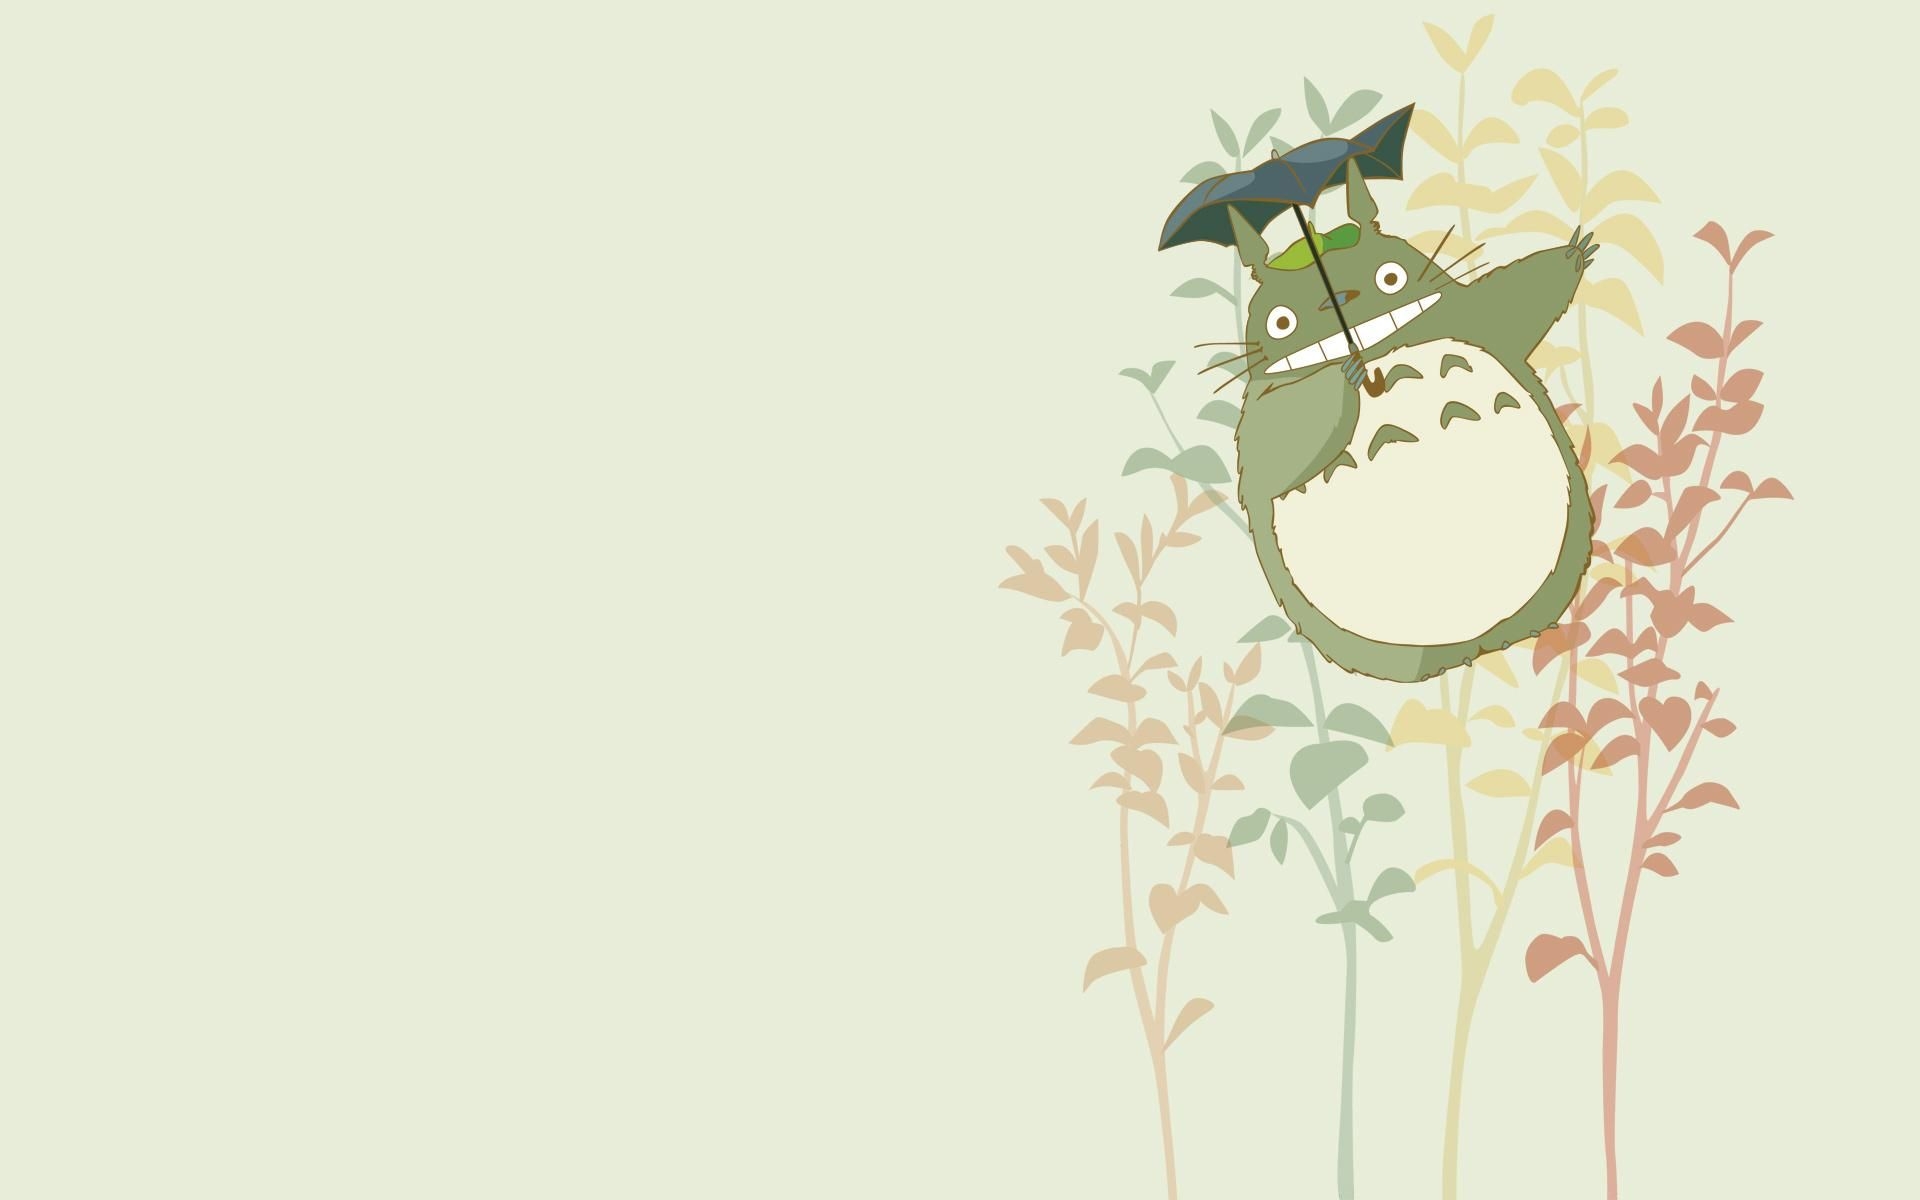 View Download Comment And Rate This 1920x1200 My Neighbor Totoro Wallpaper